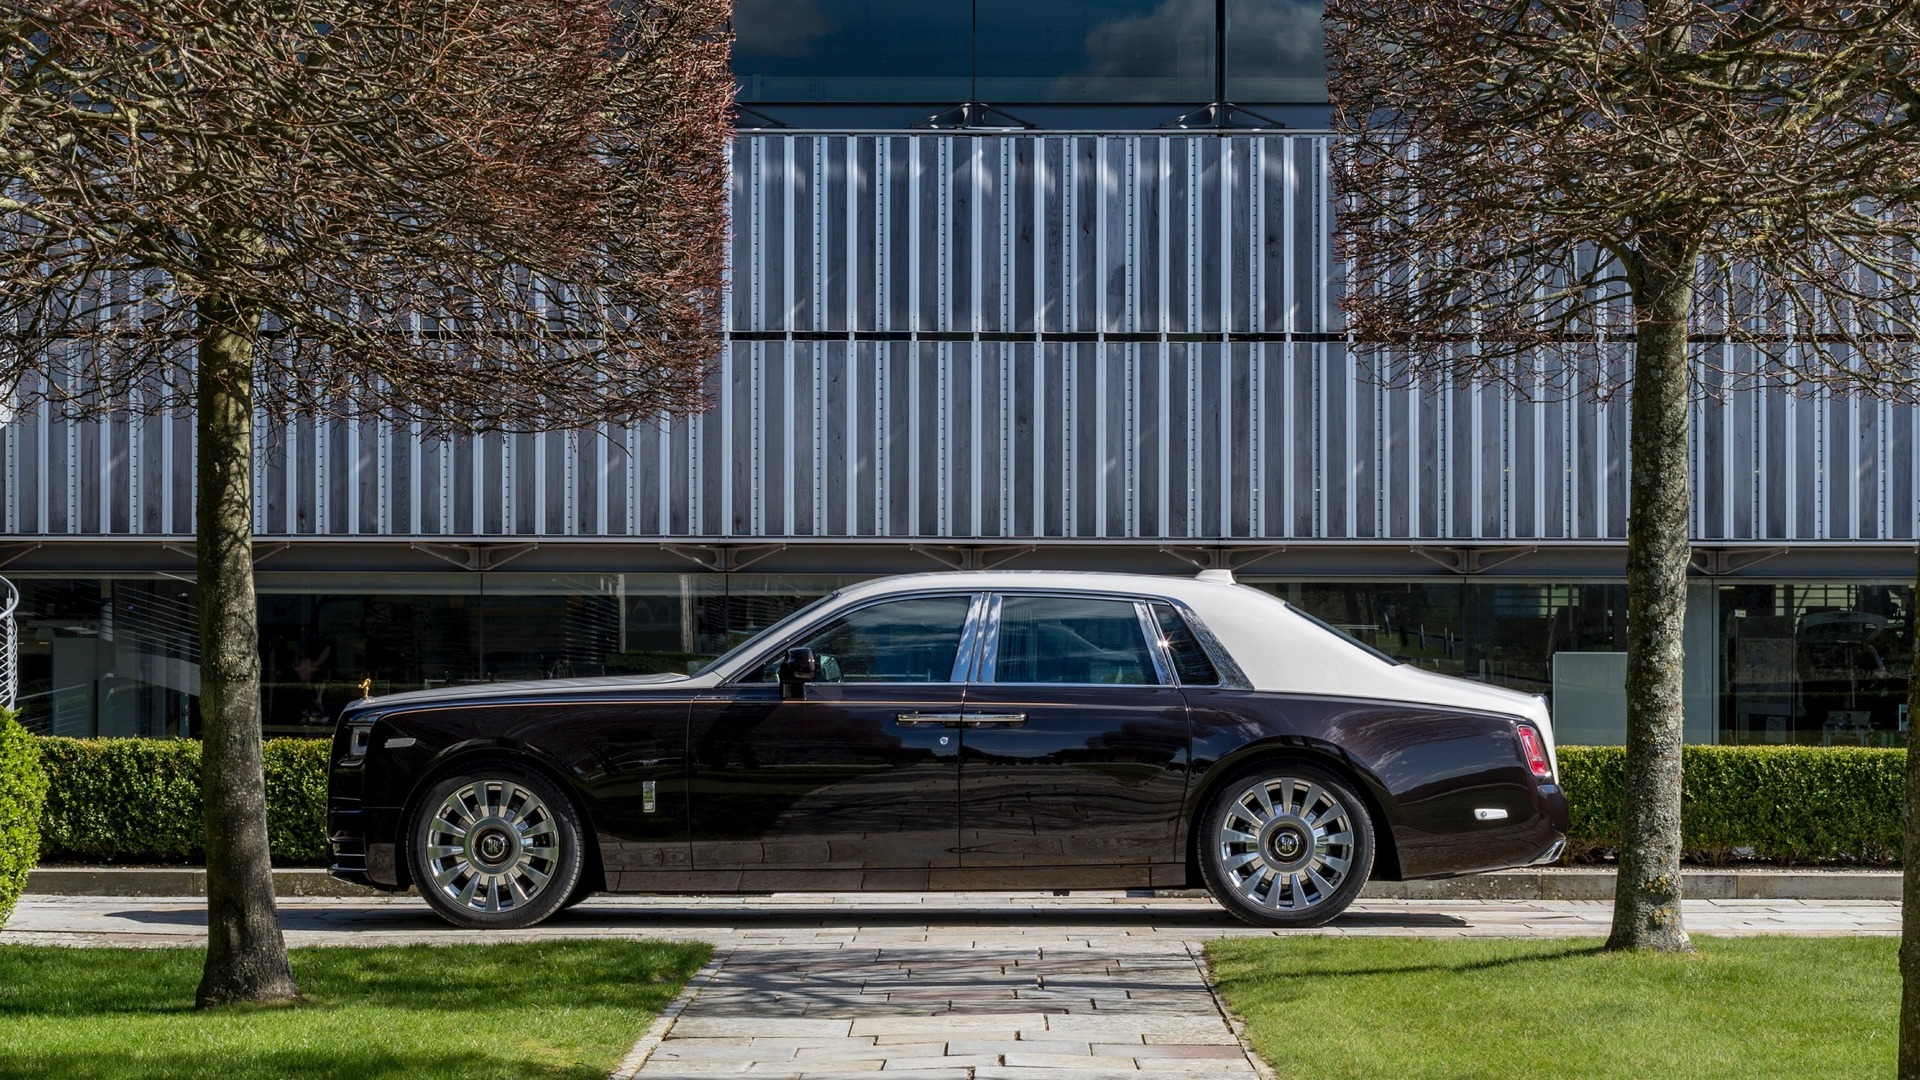 Side view of smokey quartz Rolls-Royce Phantom standard wheelbase